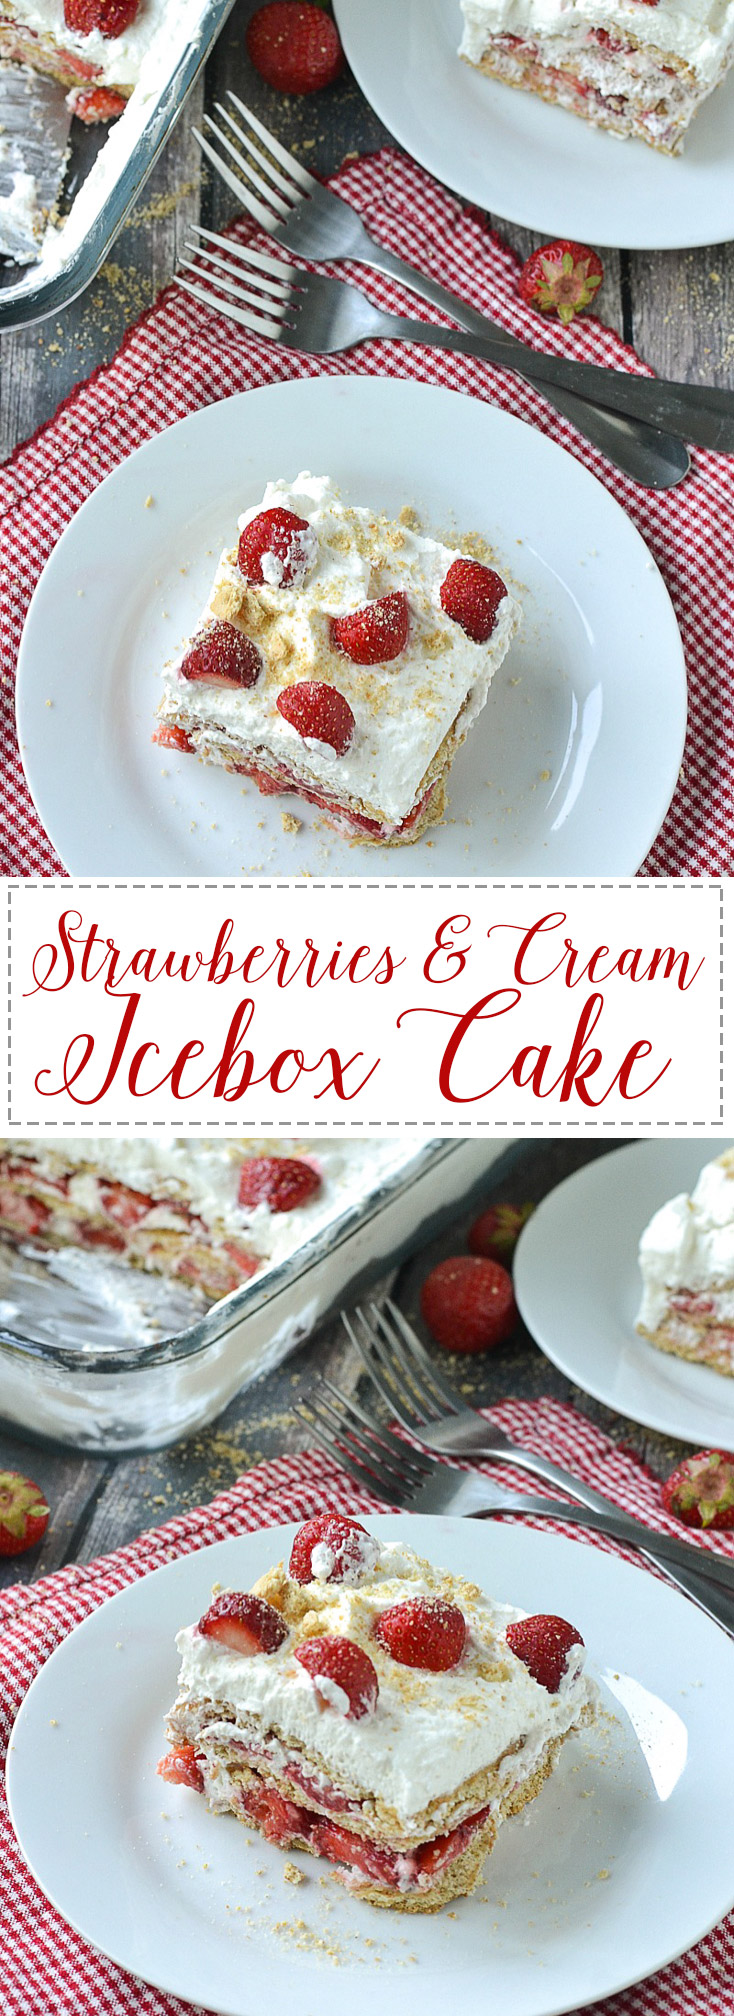 Strawberries and Cream Icebox Cake | www.motherthyme.com